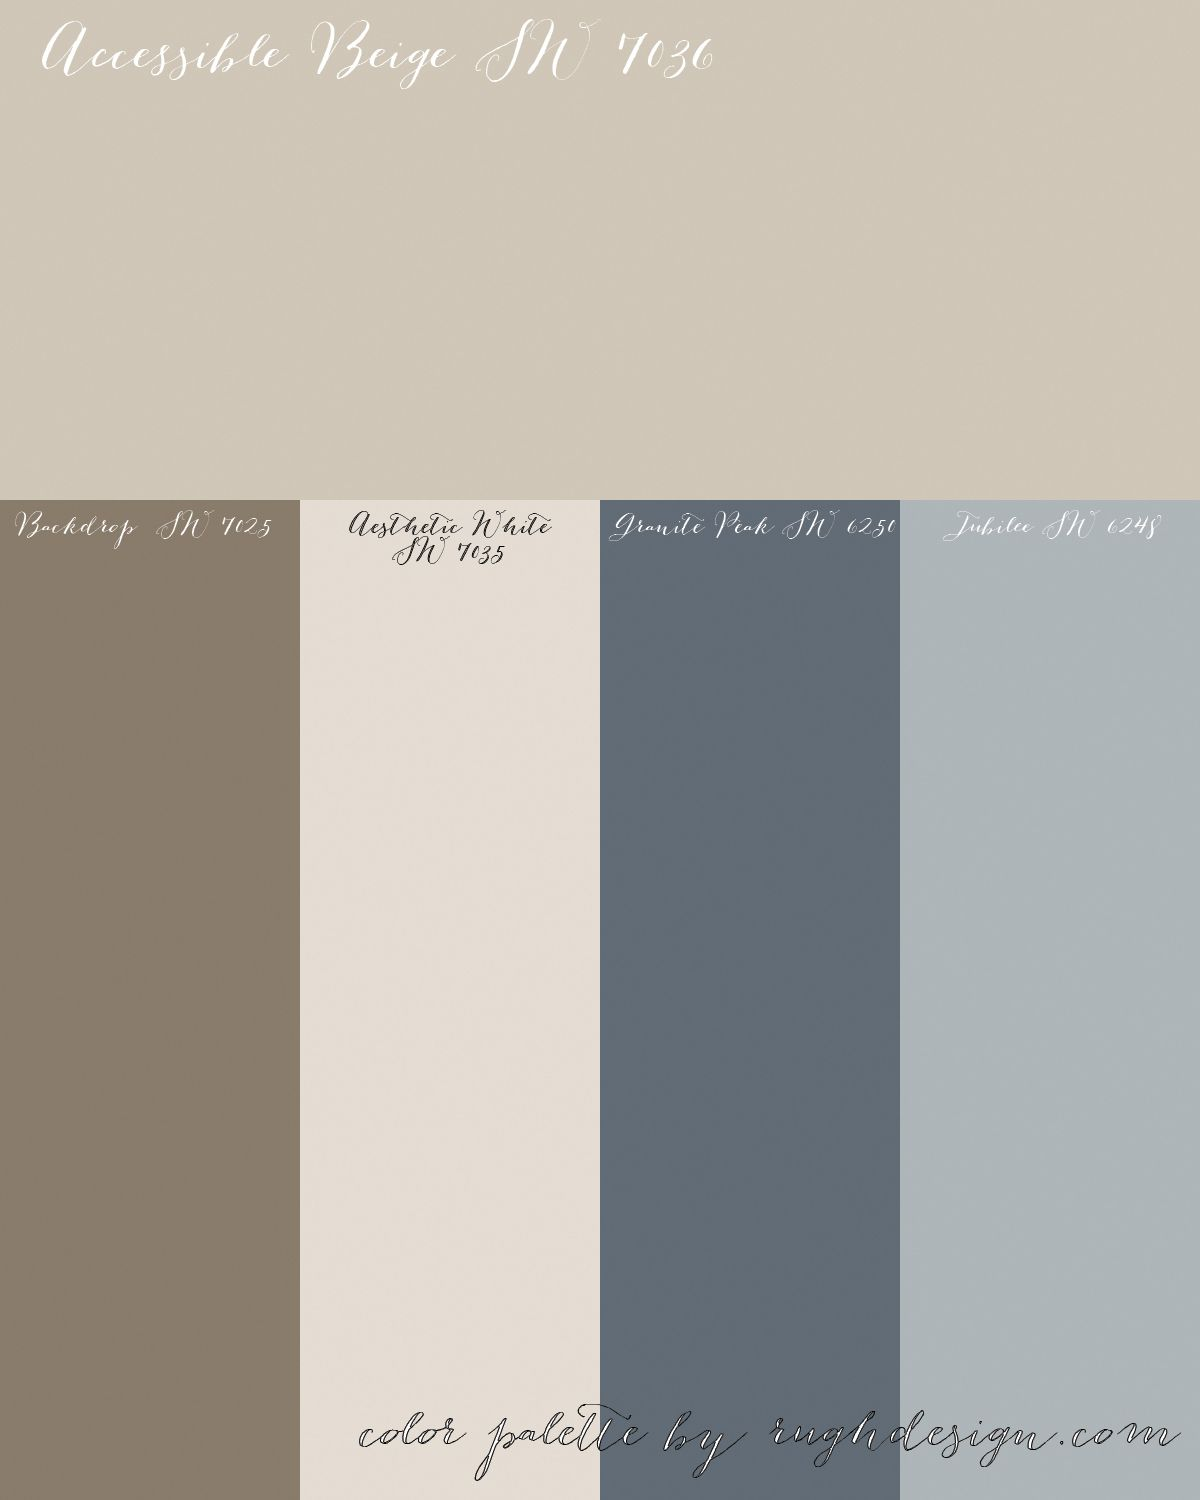 Accessible Beige In 2020 Accessible Beige Beige House Exterior House Exterior Color Schemes